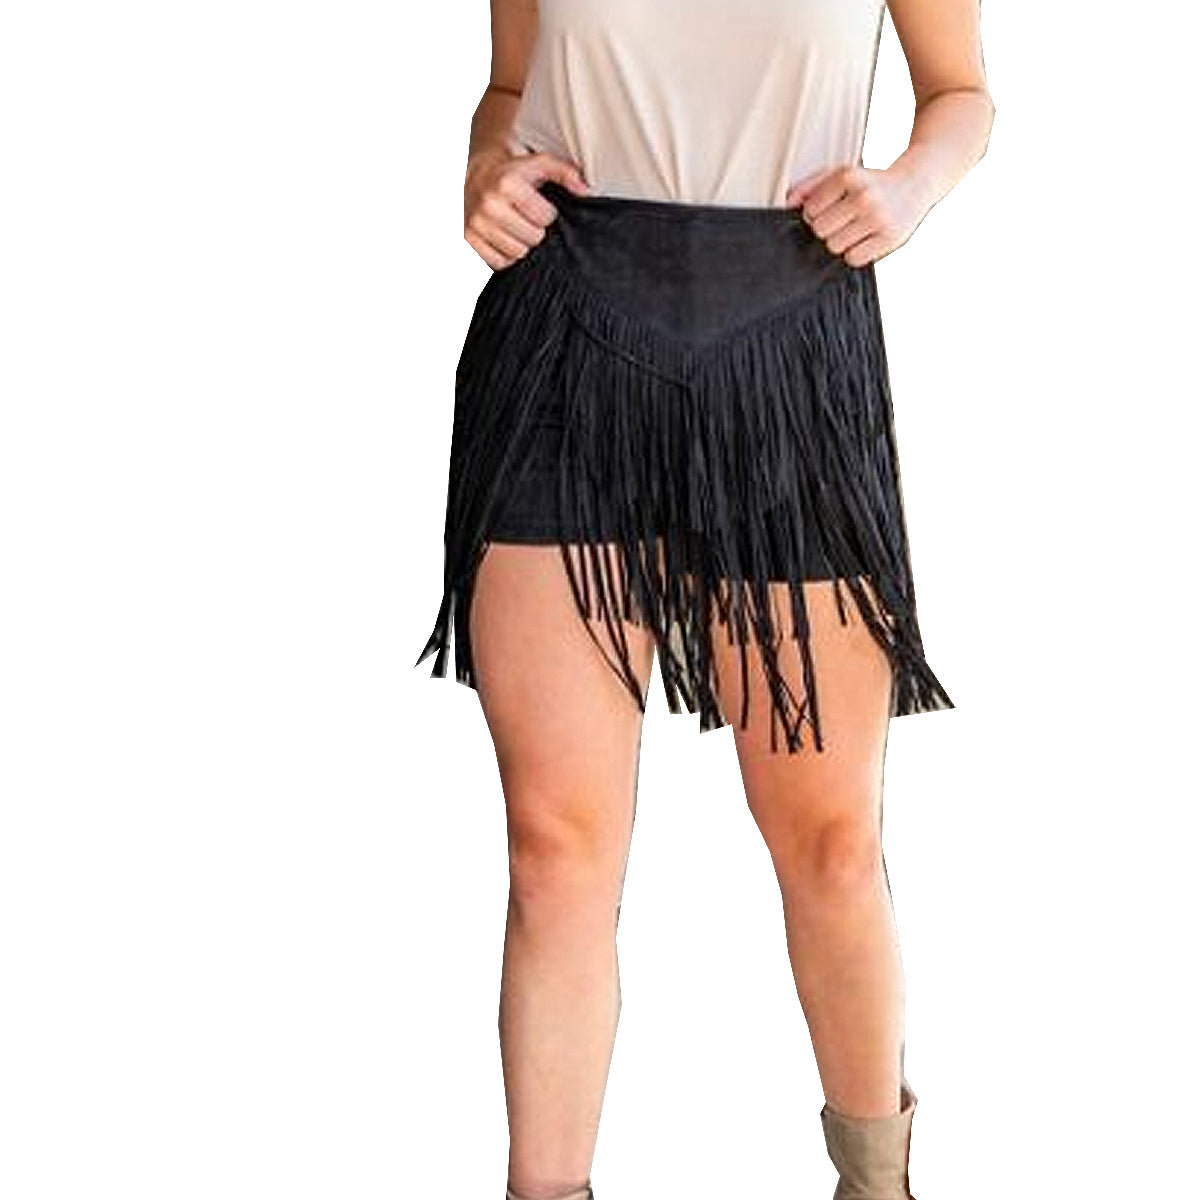 L & B Women's Suede Fringe Shorts - Black